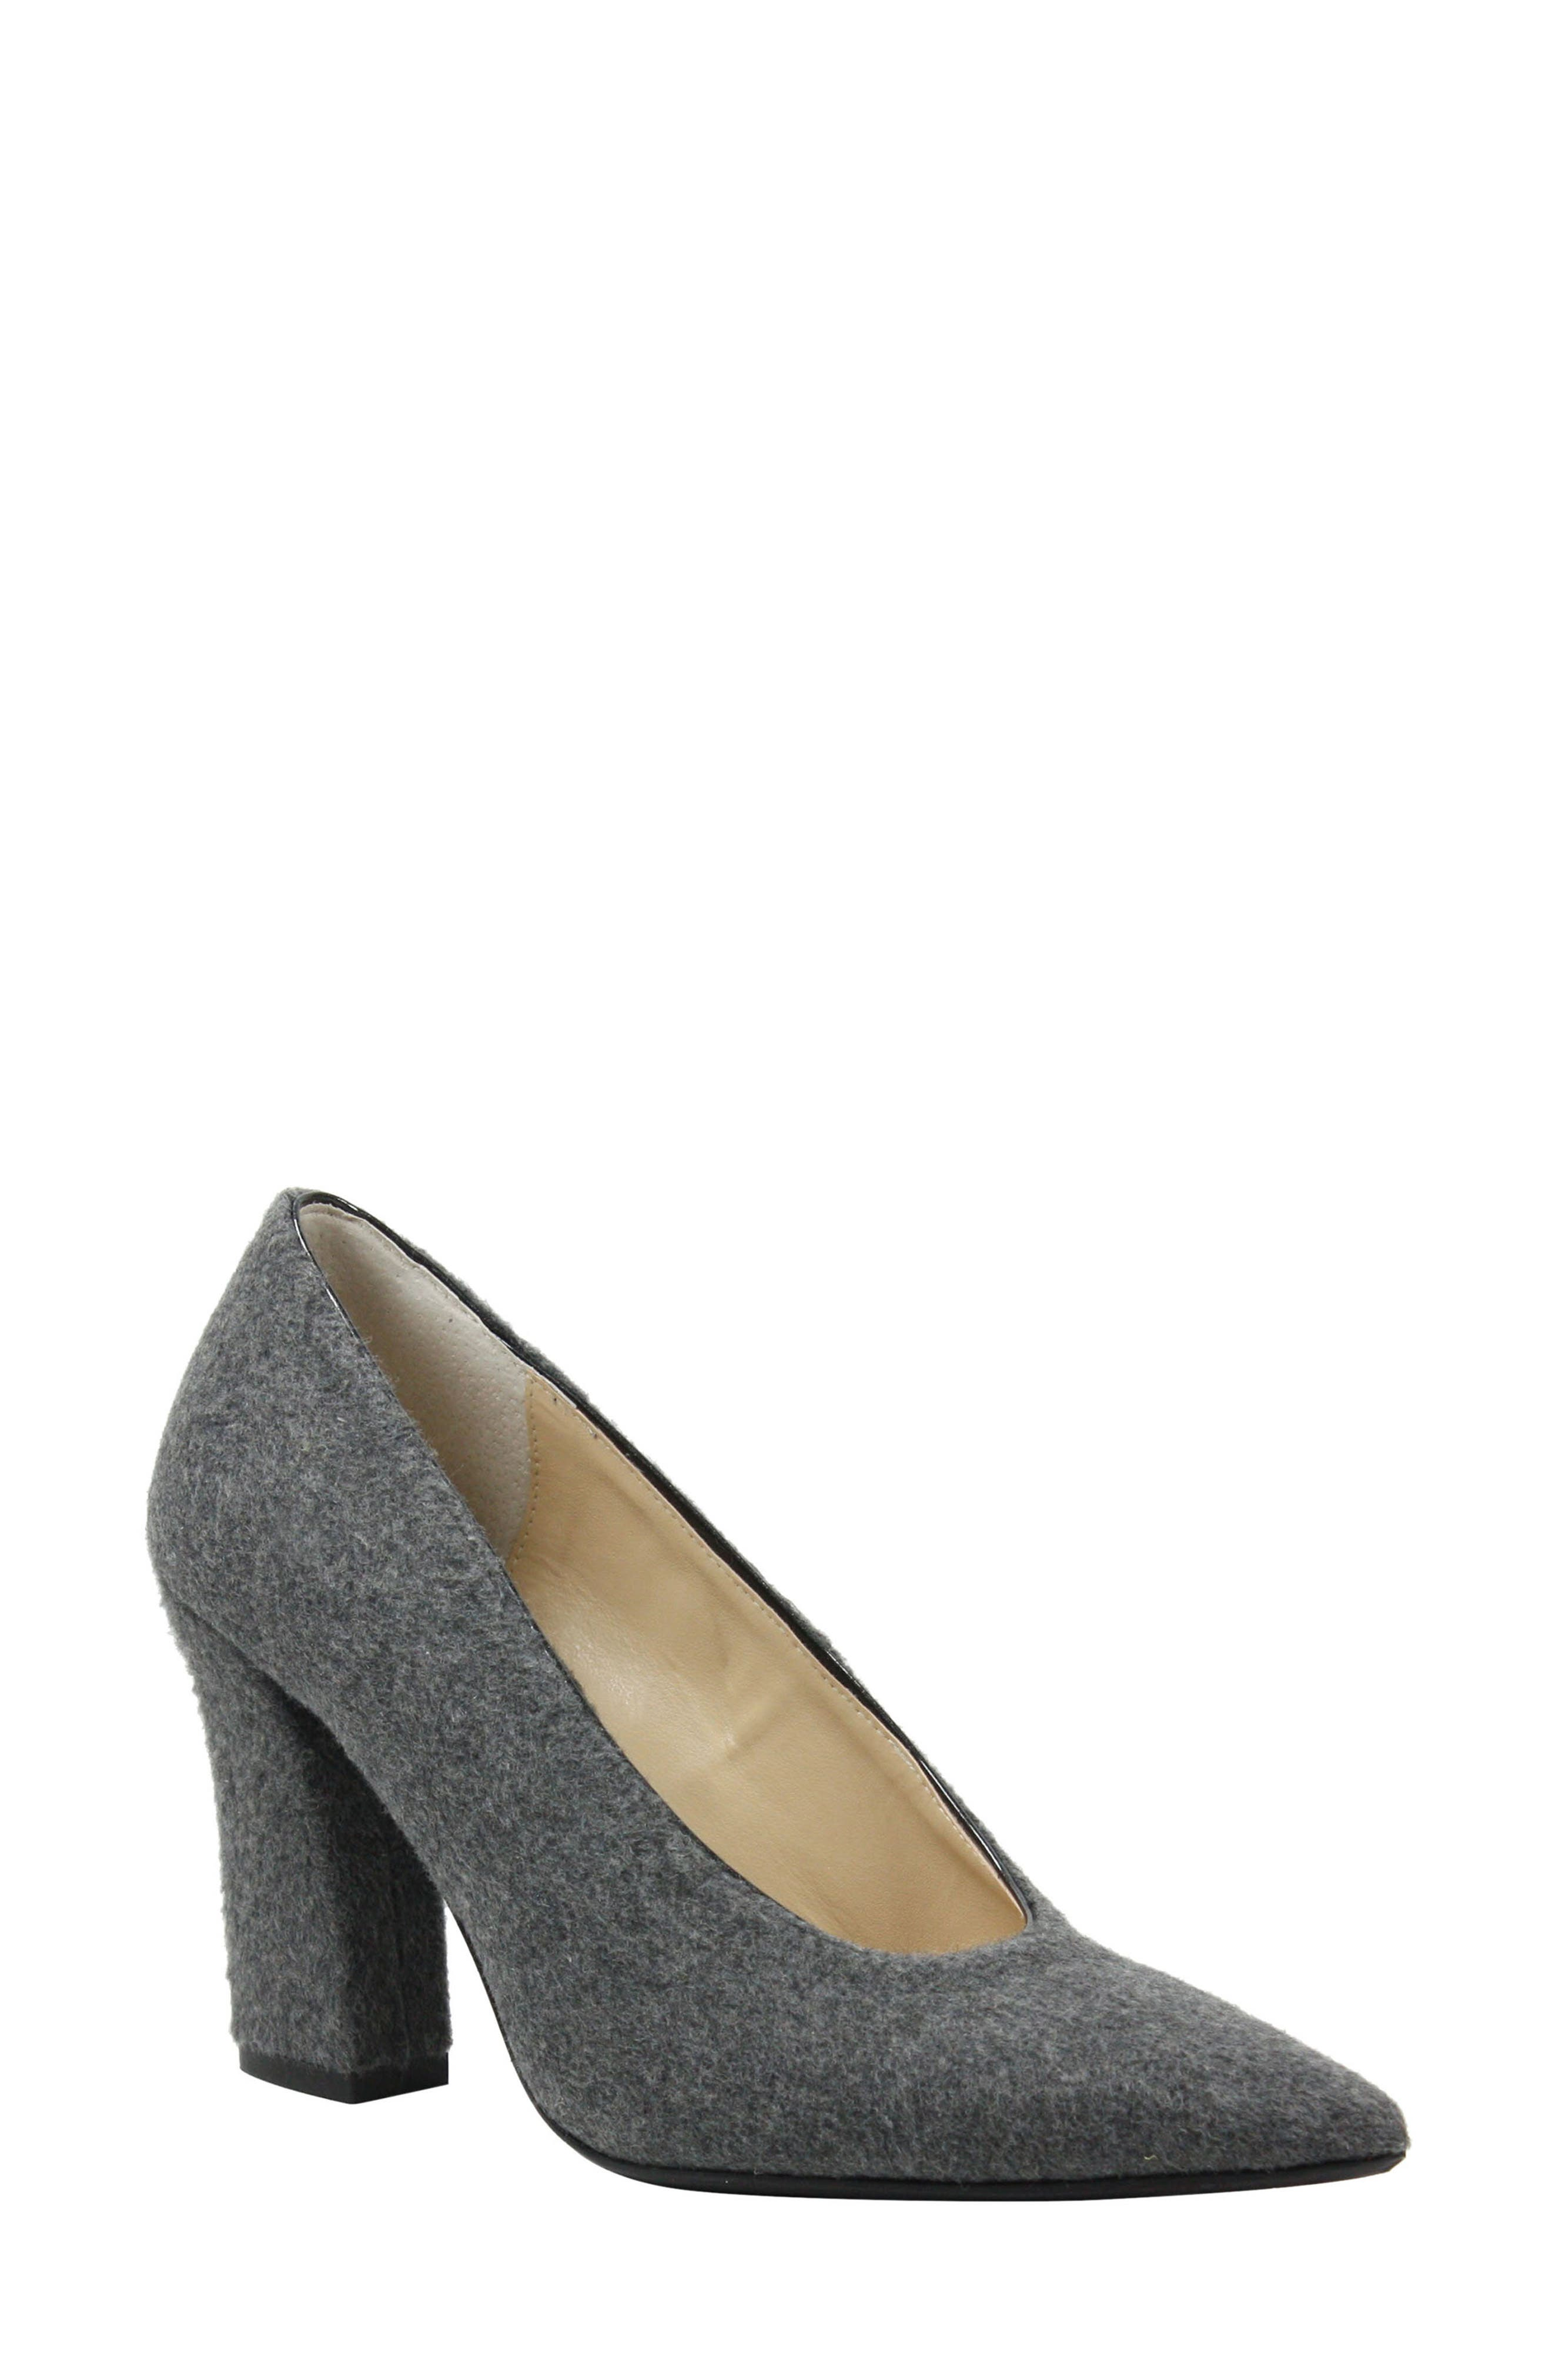 J. RENEÉ, Madisson Pointy Toe Pump, Main thumbnail 1, color, GREY FABRIC